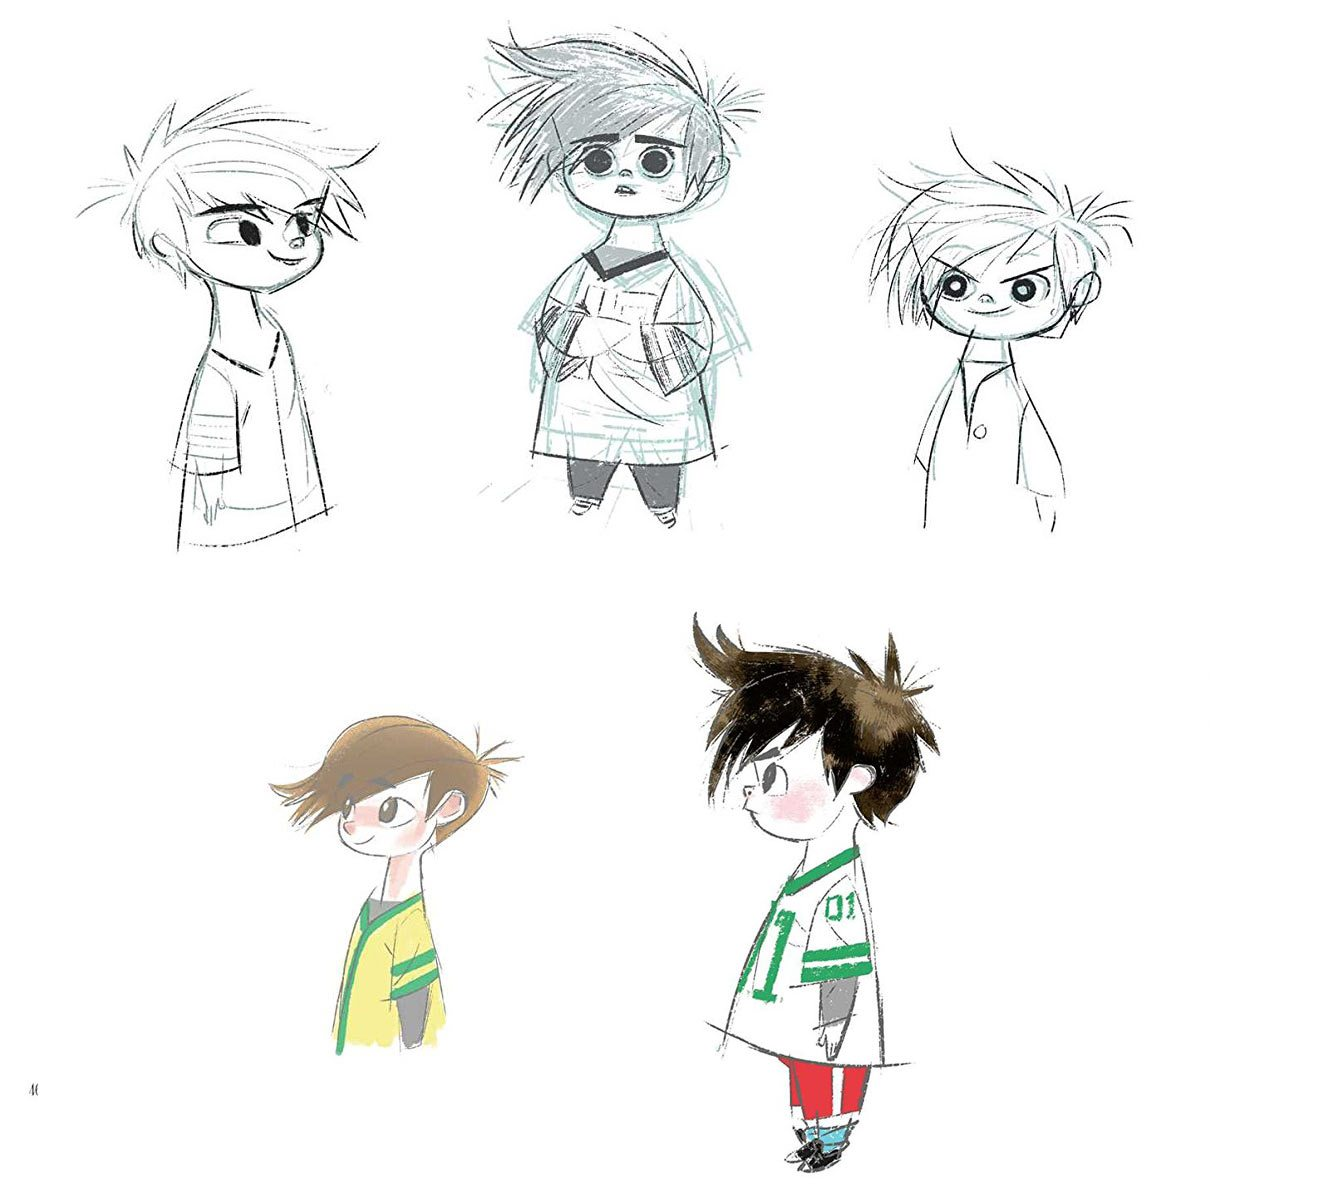 Director Tom McGrath wanted the stylized look of Joe Moshier's character designs (above) for the project.